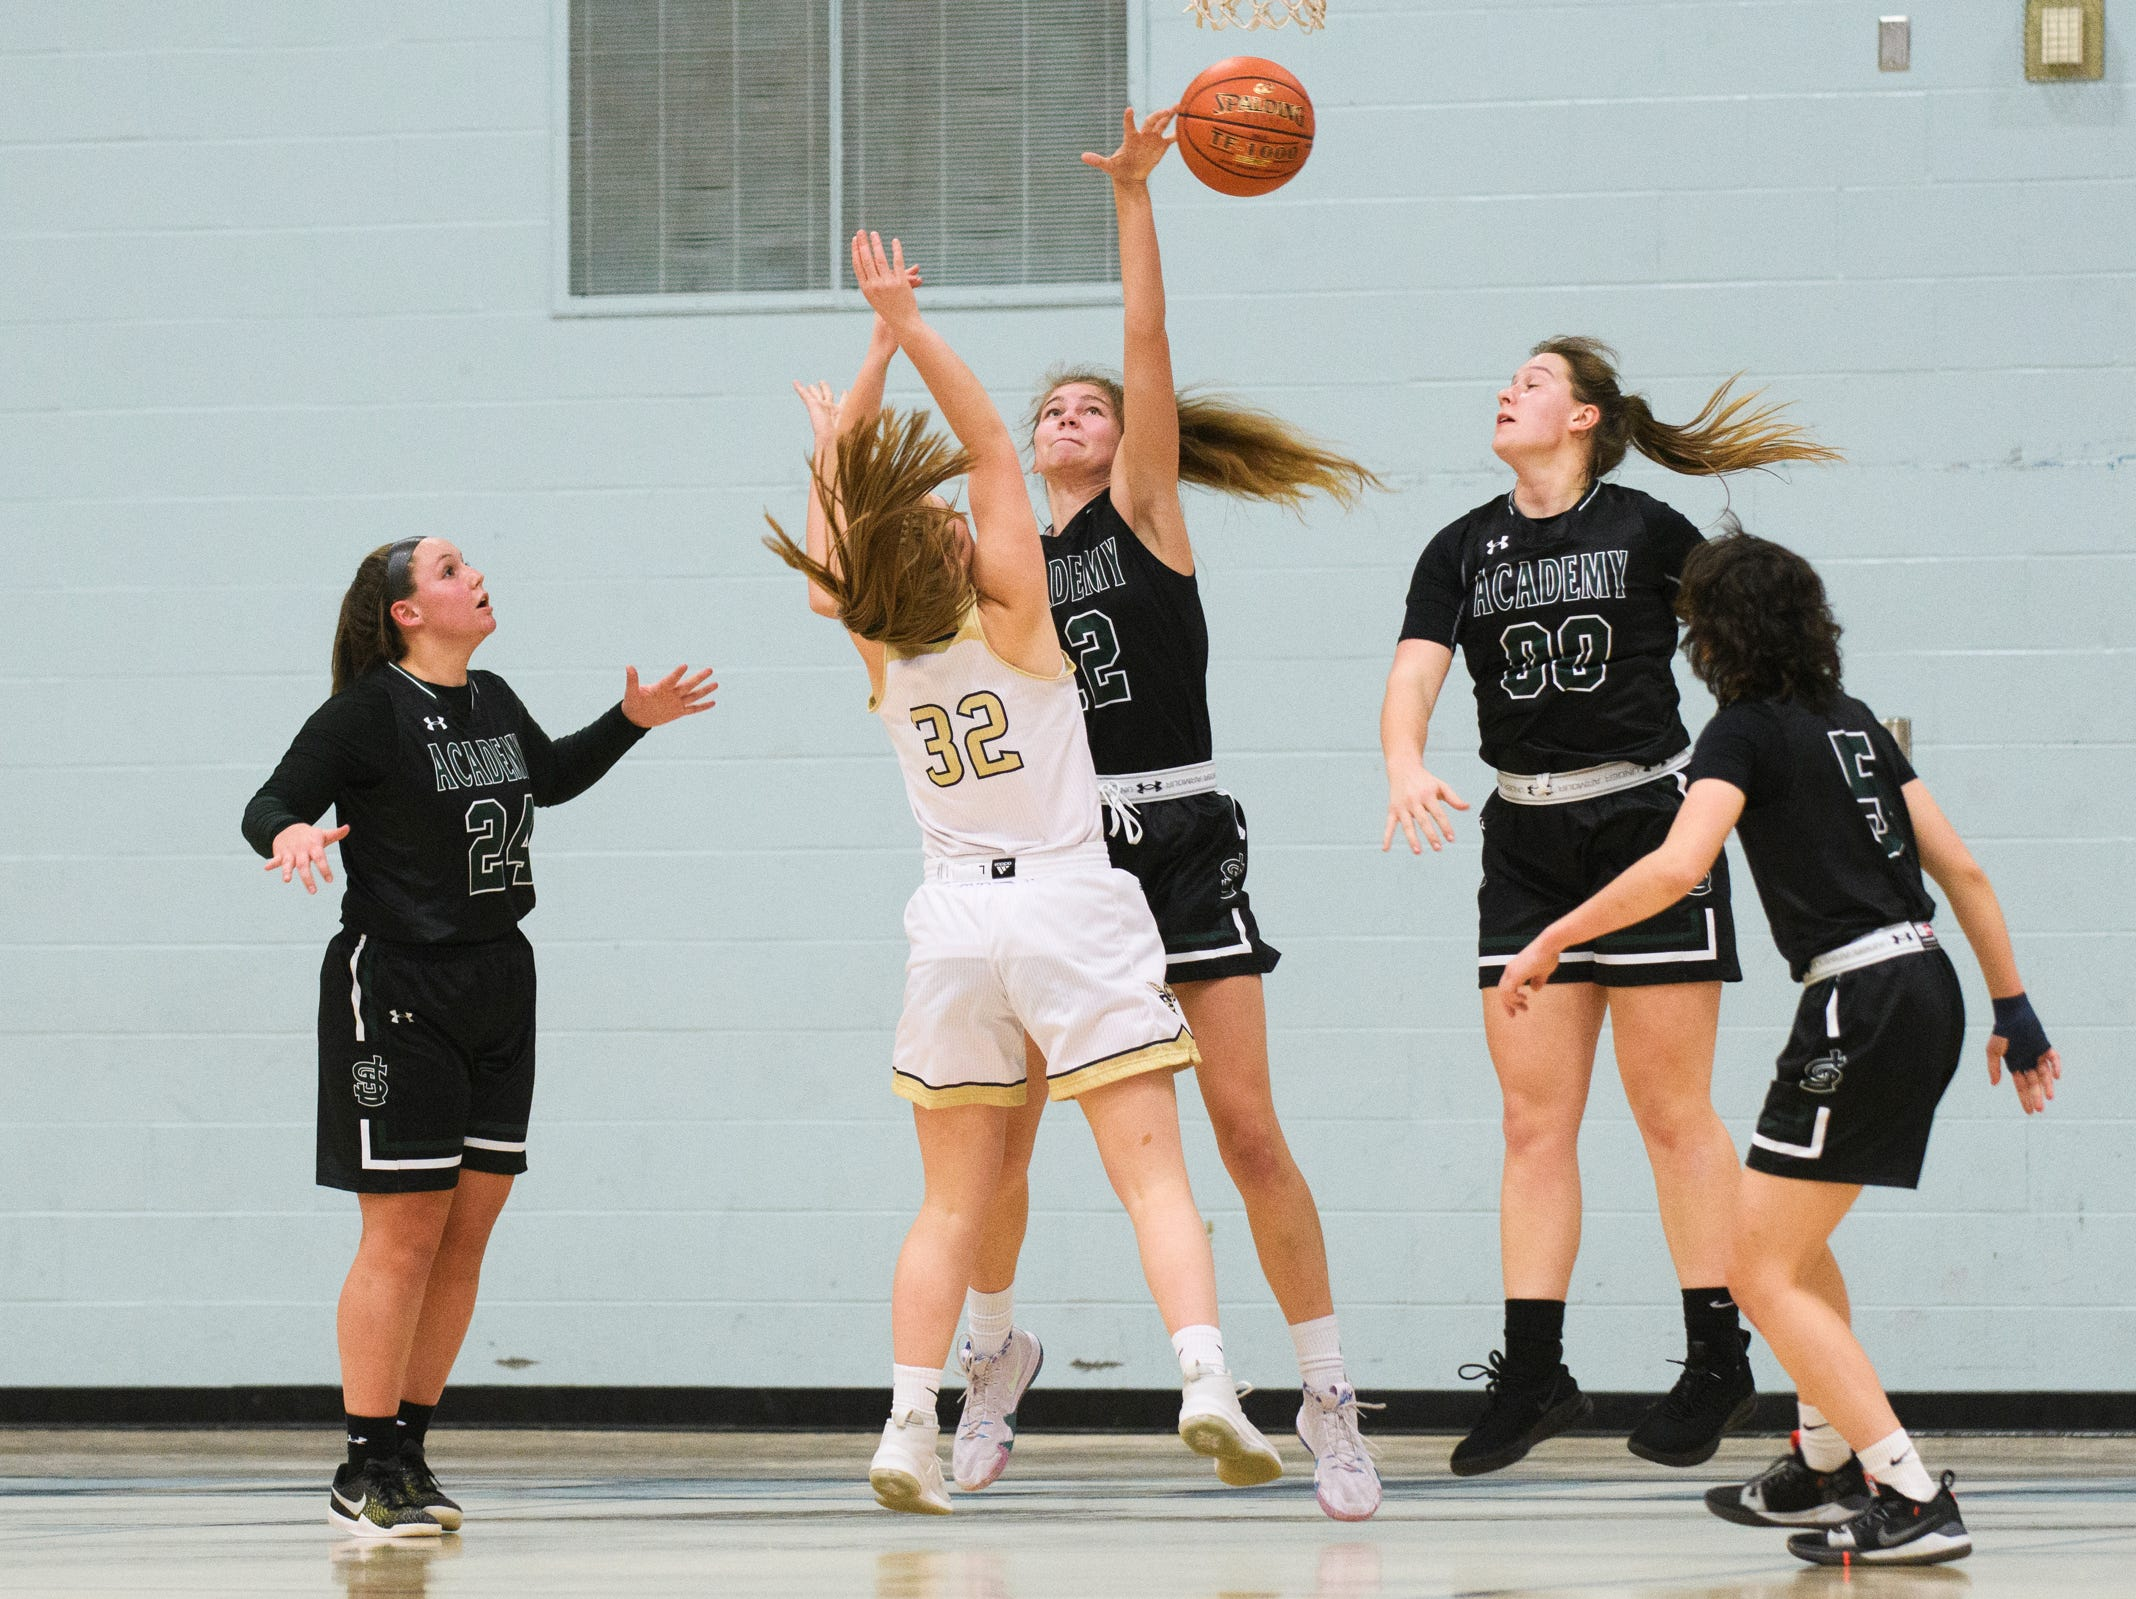 St. Johnsbury's Lara Rohkohl (12) blocks the shot by Essex's Sarah Coulter (32) during the girls basketball game between the St. Johnsbury Hilltoppers and the Essex Hornets at Essex High School on Thursday night January 17, 2019 in Essex.